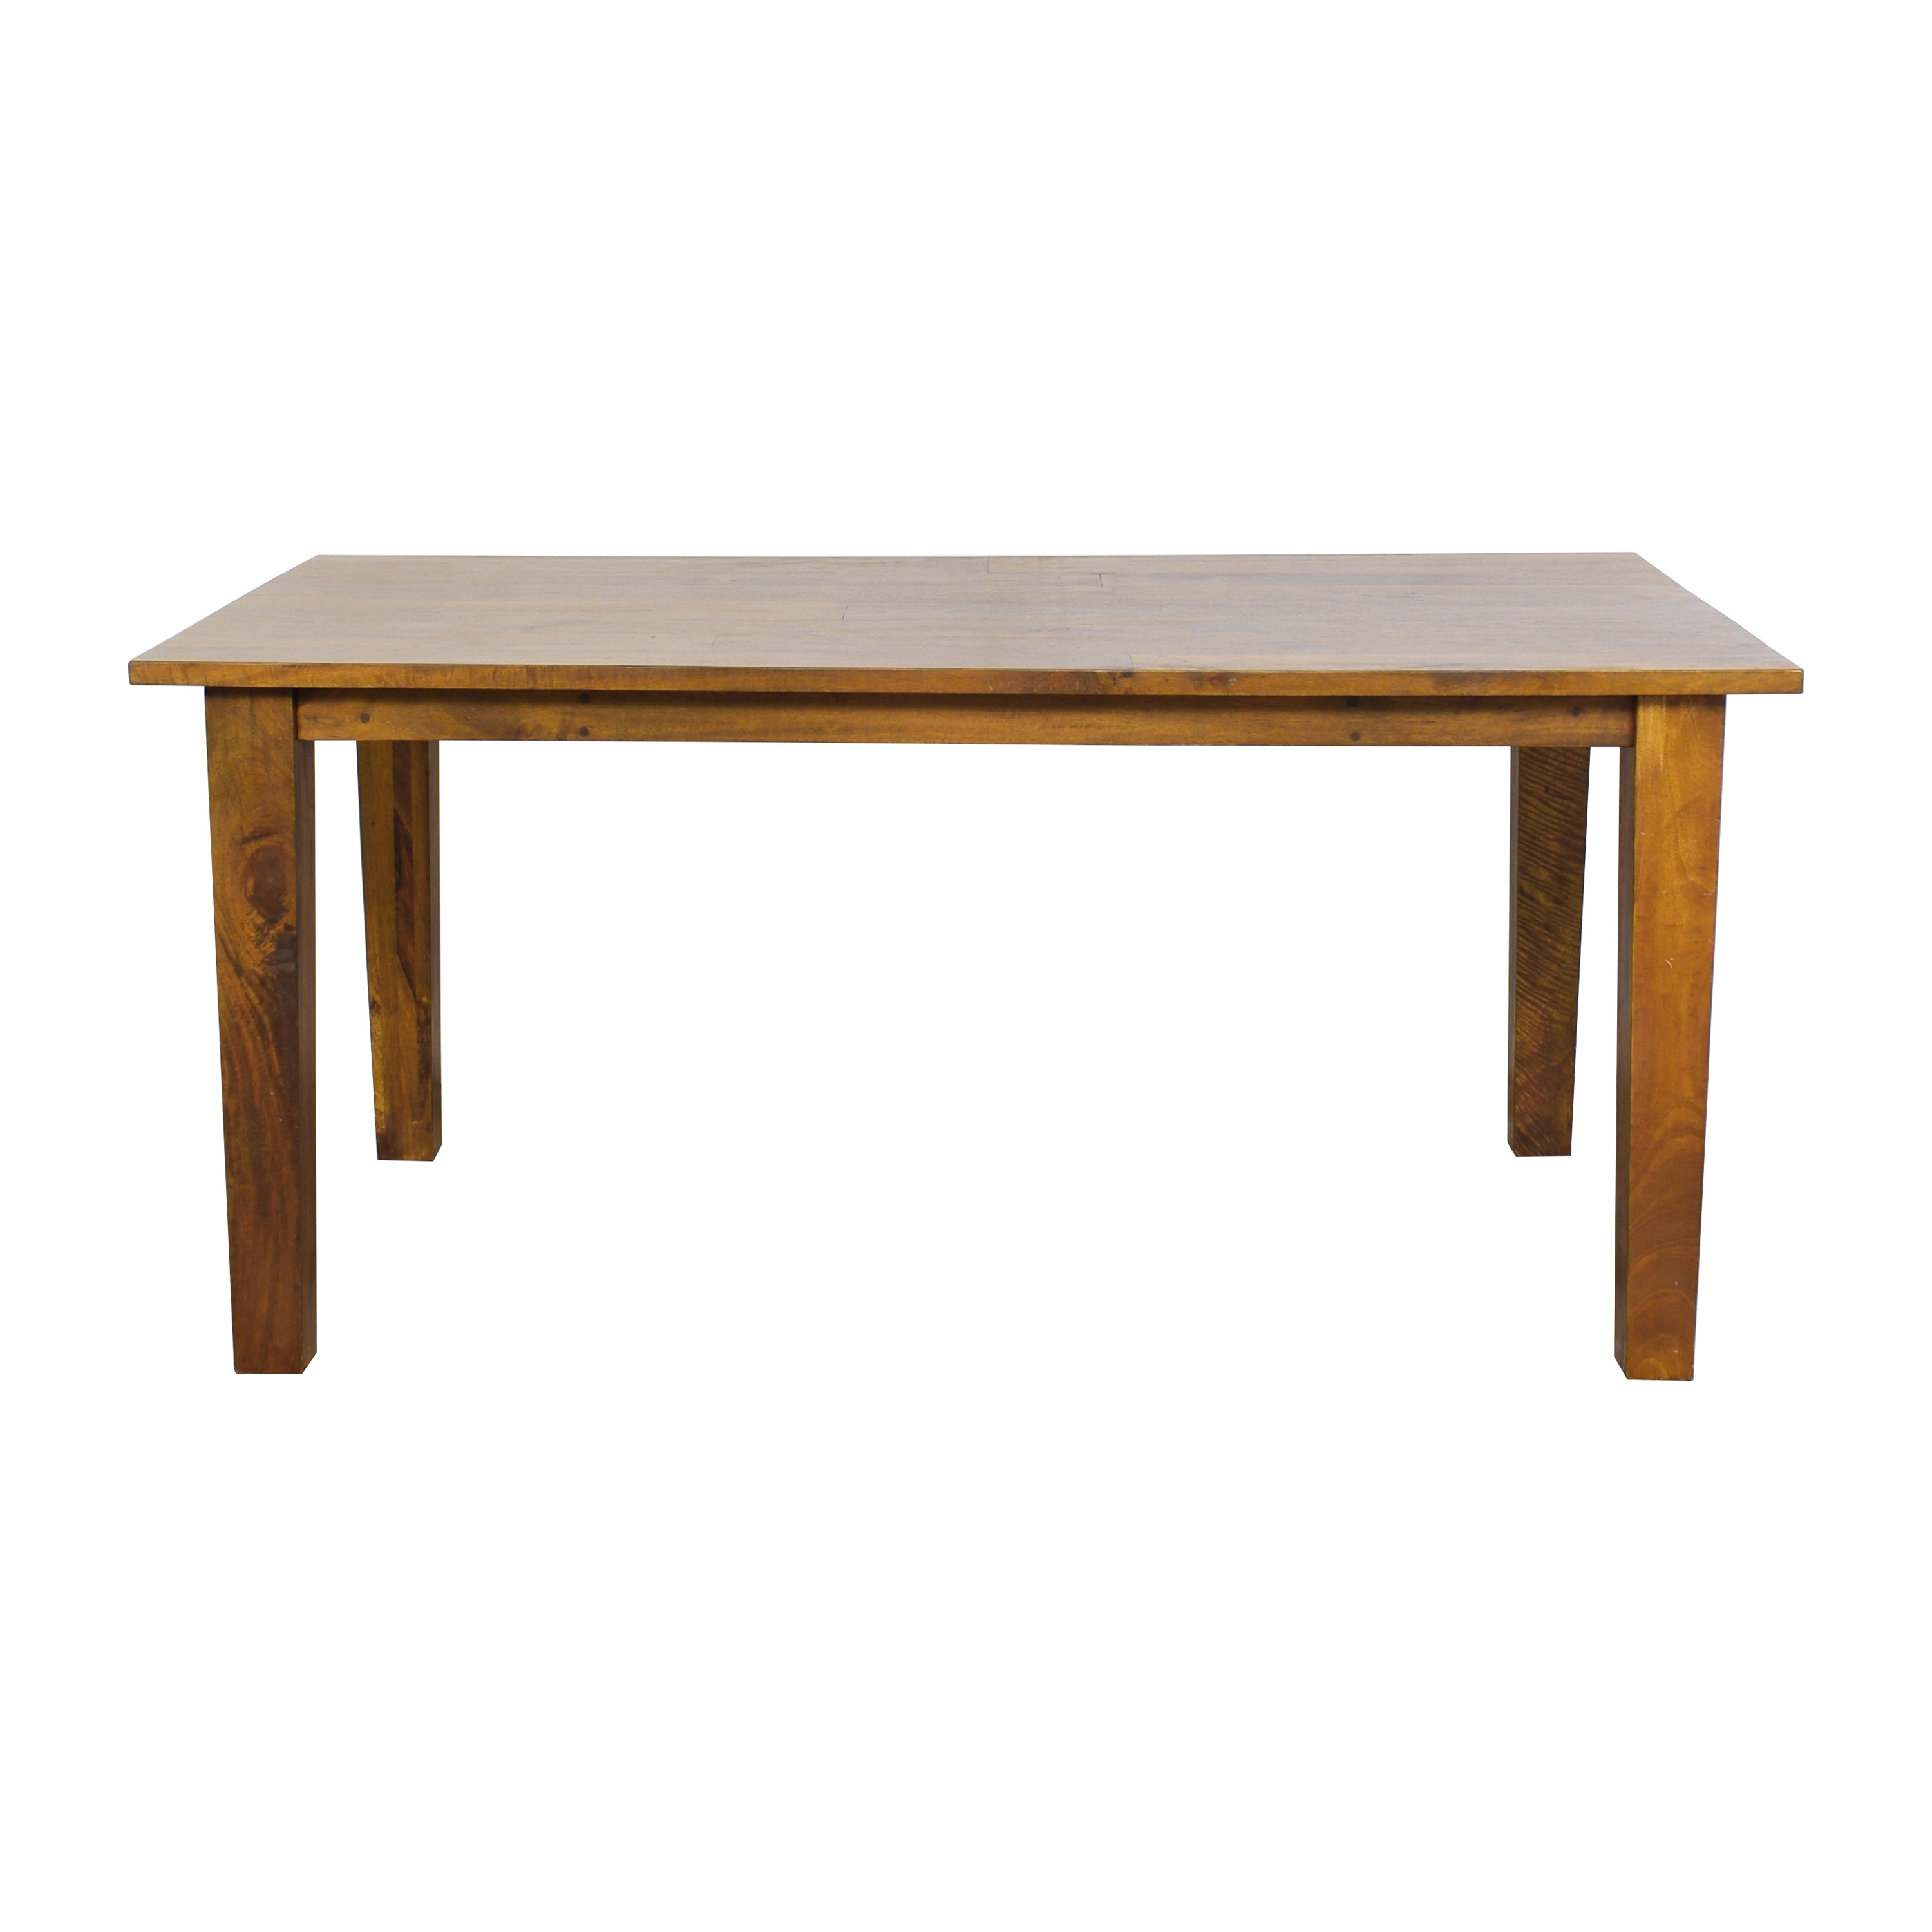 buy Crate & Barrel Basque Dining Table Crate & Barrel